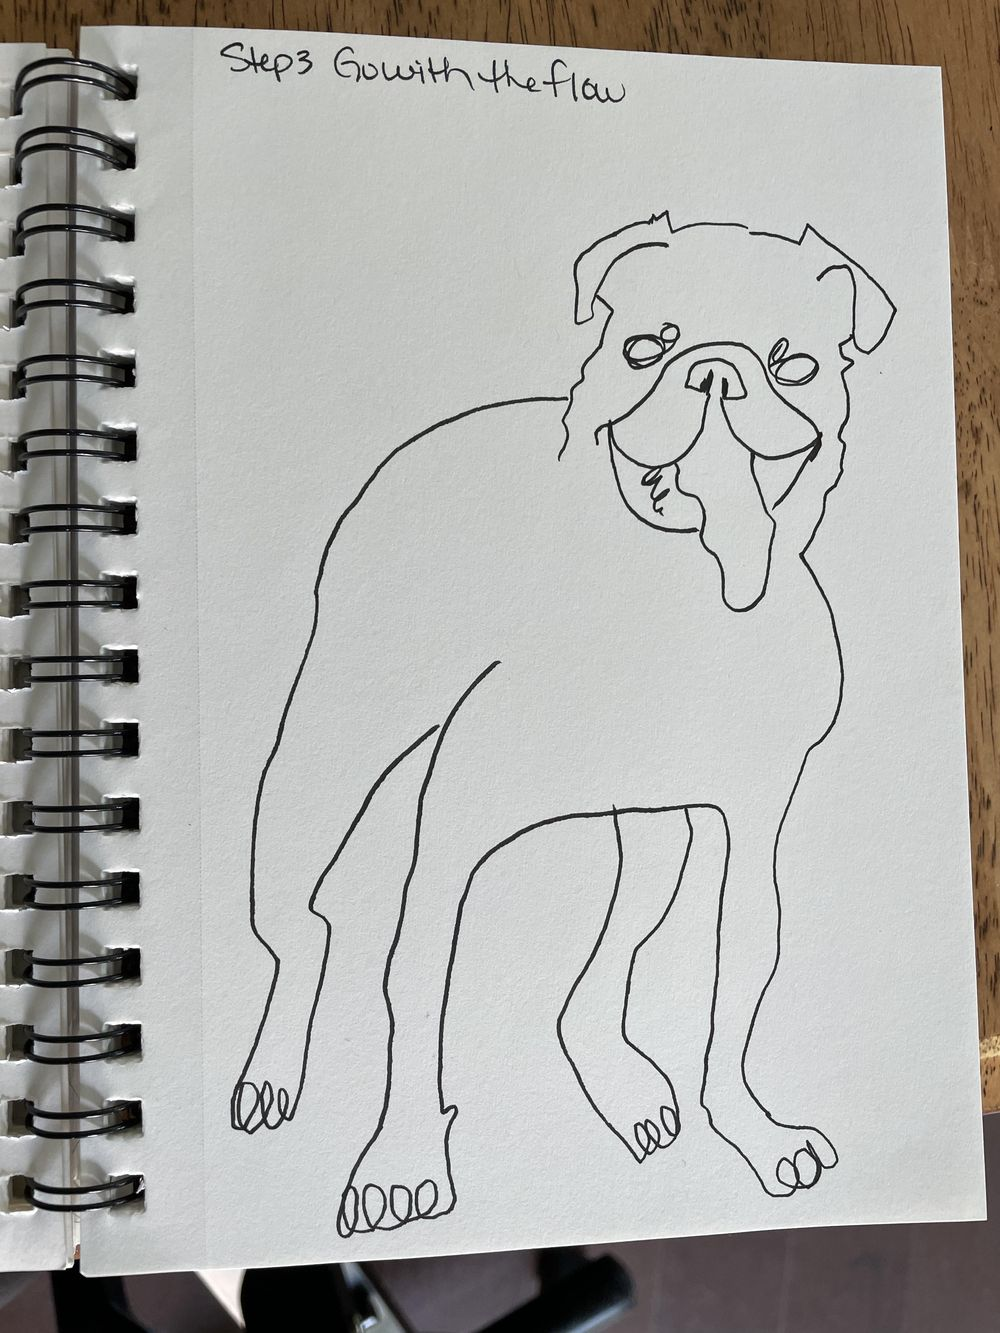 Line drawing practice - image 18 - student project